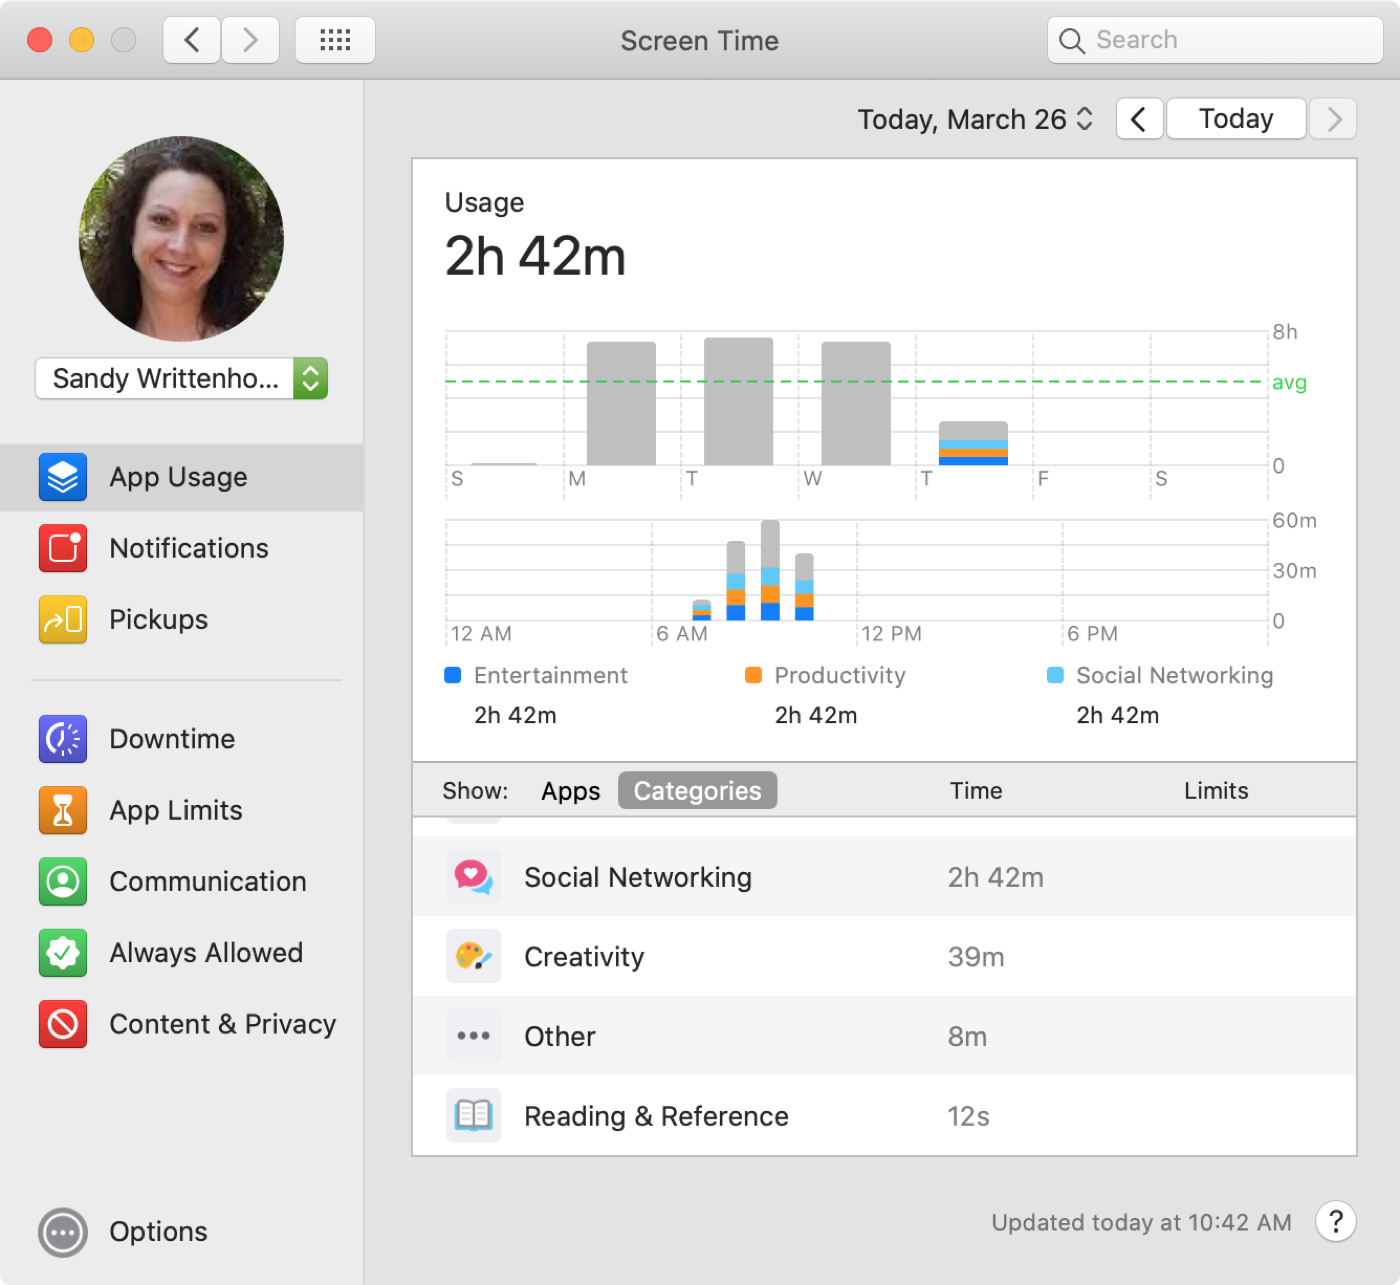 Screen Time App Usage Categories Mac